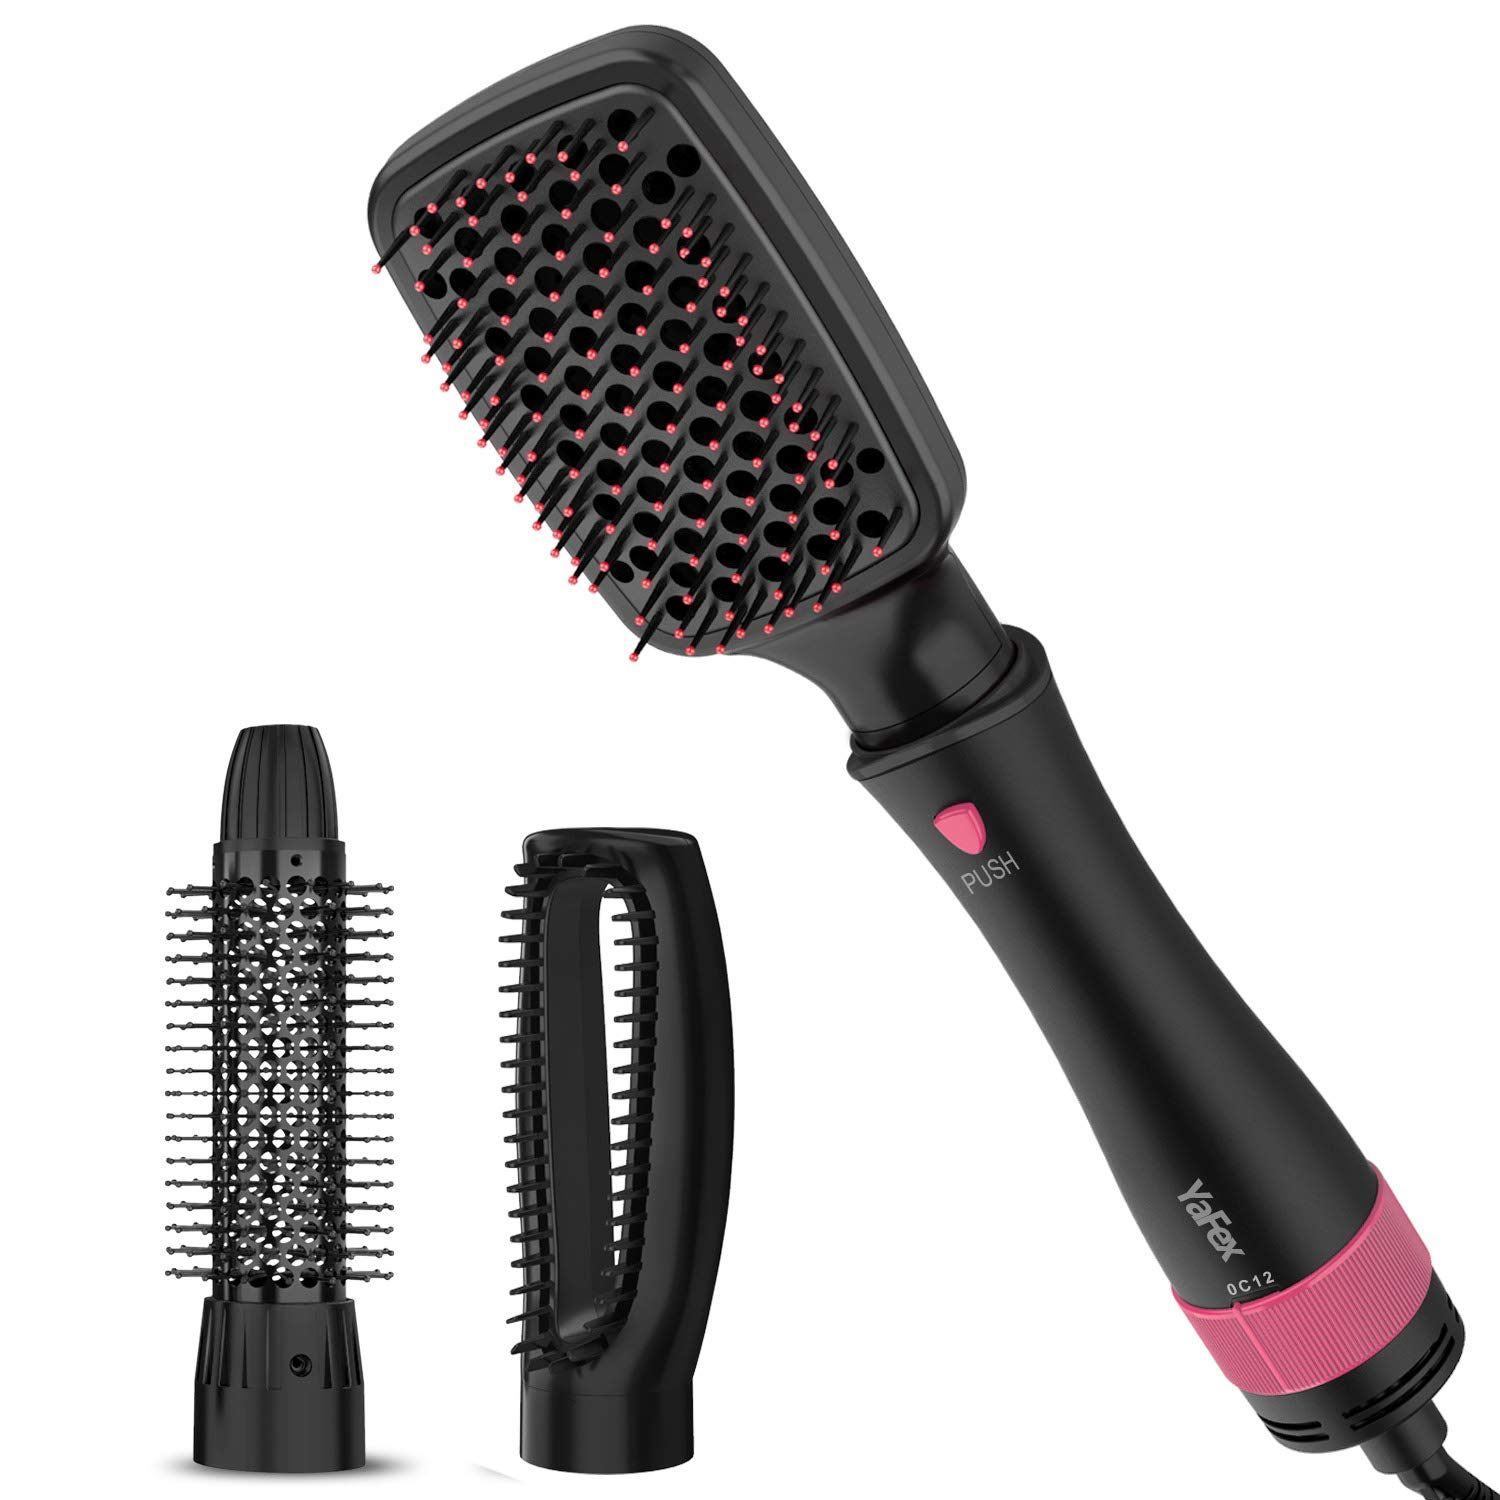 One Step Hair Dryer Styler and Volumizer – YaFex 3 in 1 Ionic Hot Air Brush, Blow Dryer Brush, Hair Curler and Straightener for All Hair Types